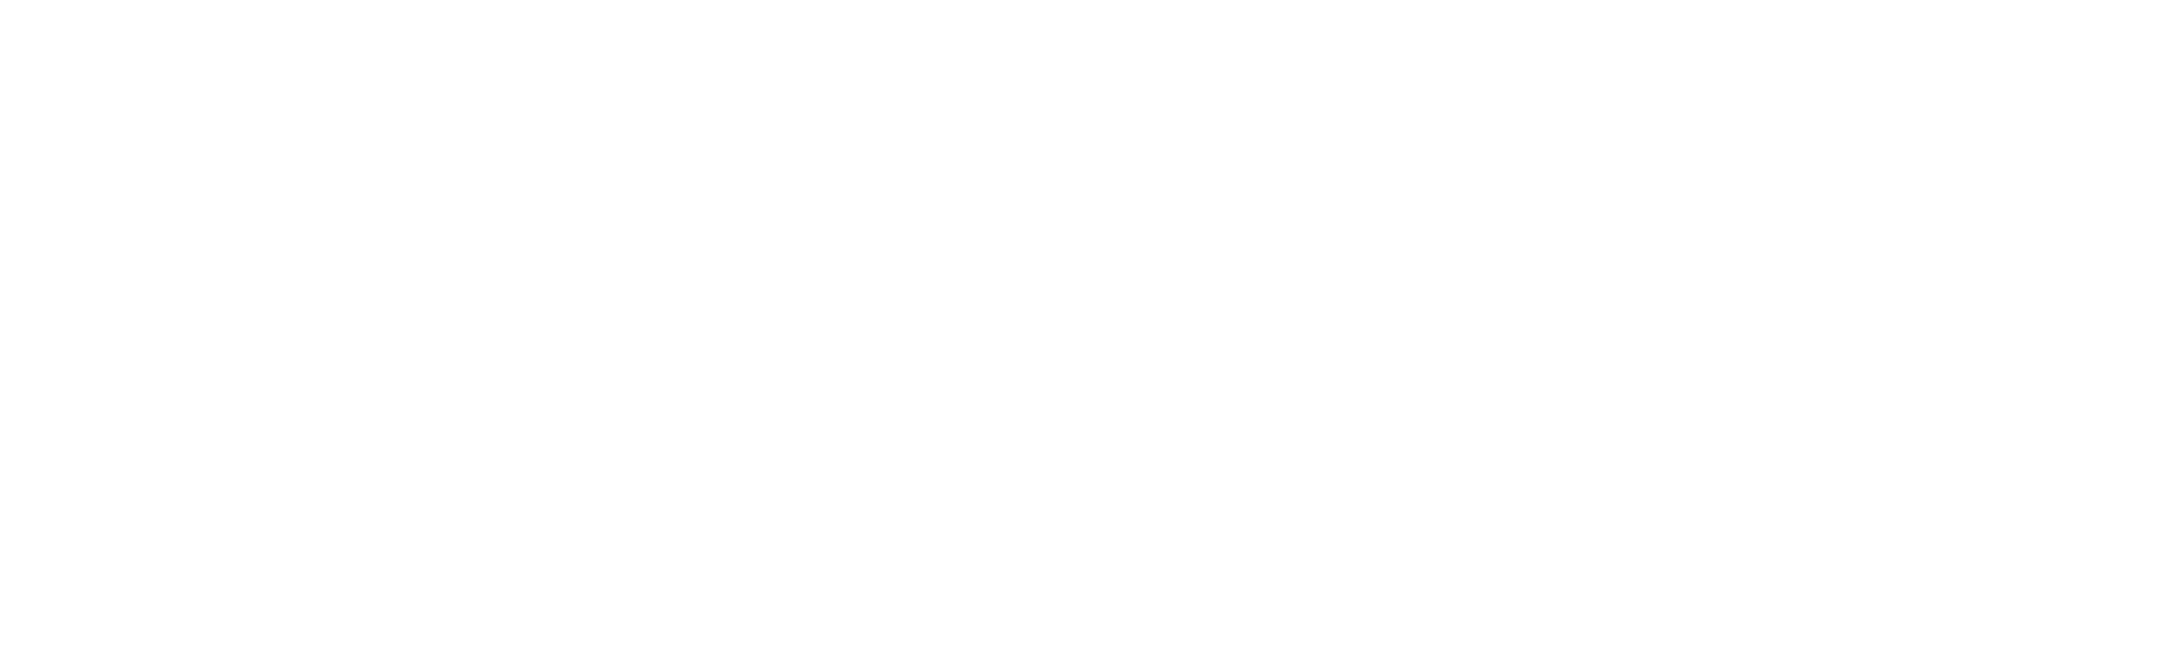 Legacy 521 Apartments